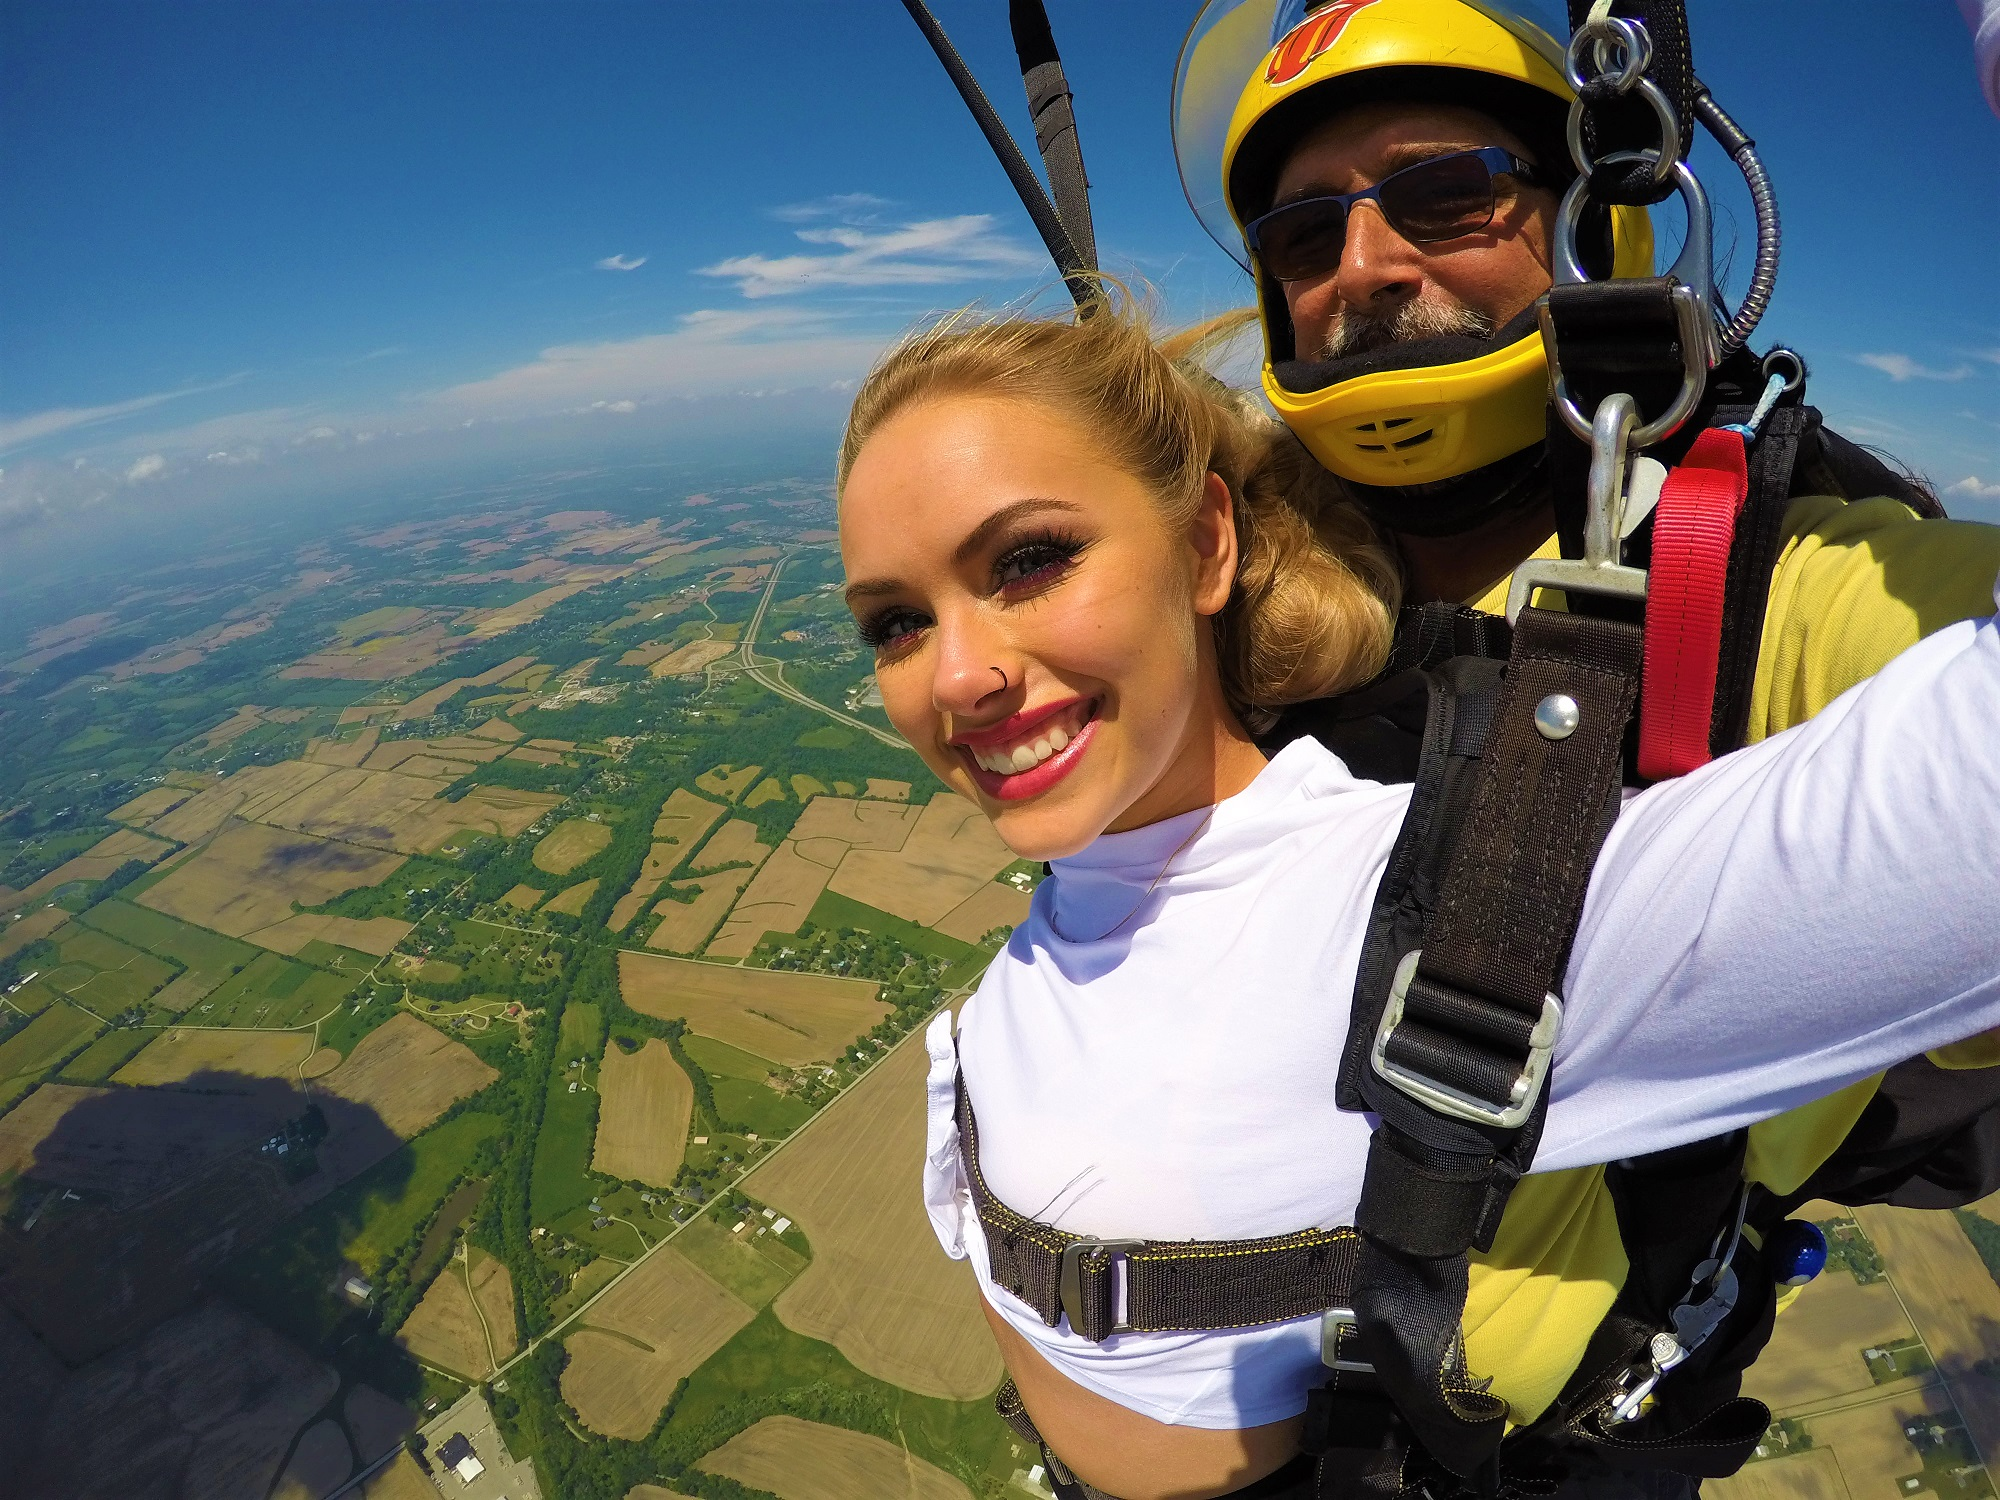 Skydive Greene County | Skydiving the Ohio skies since 1961